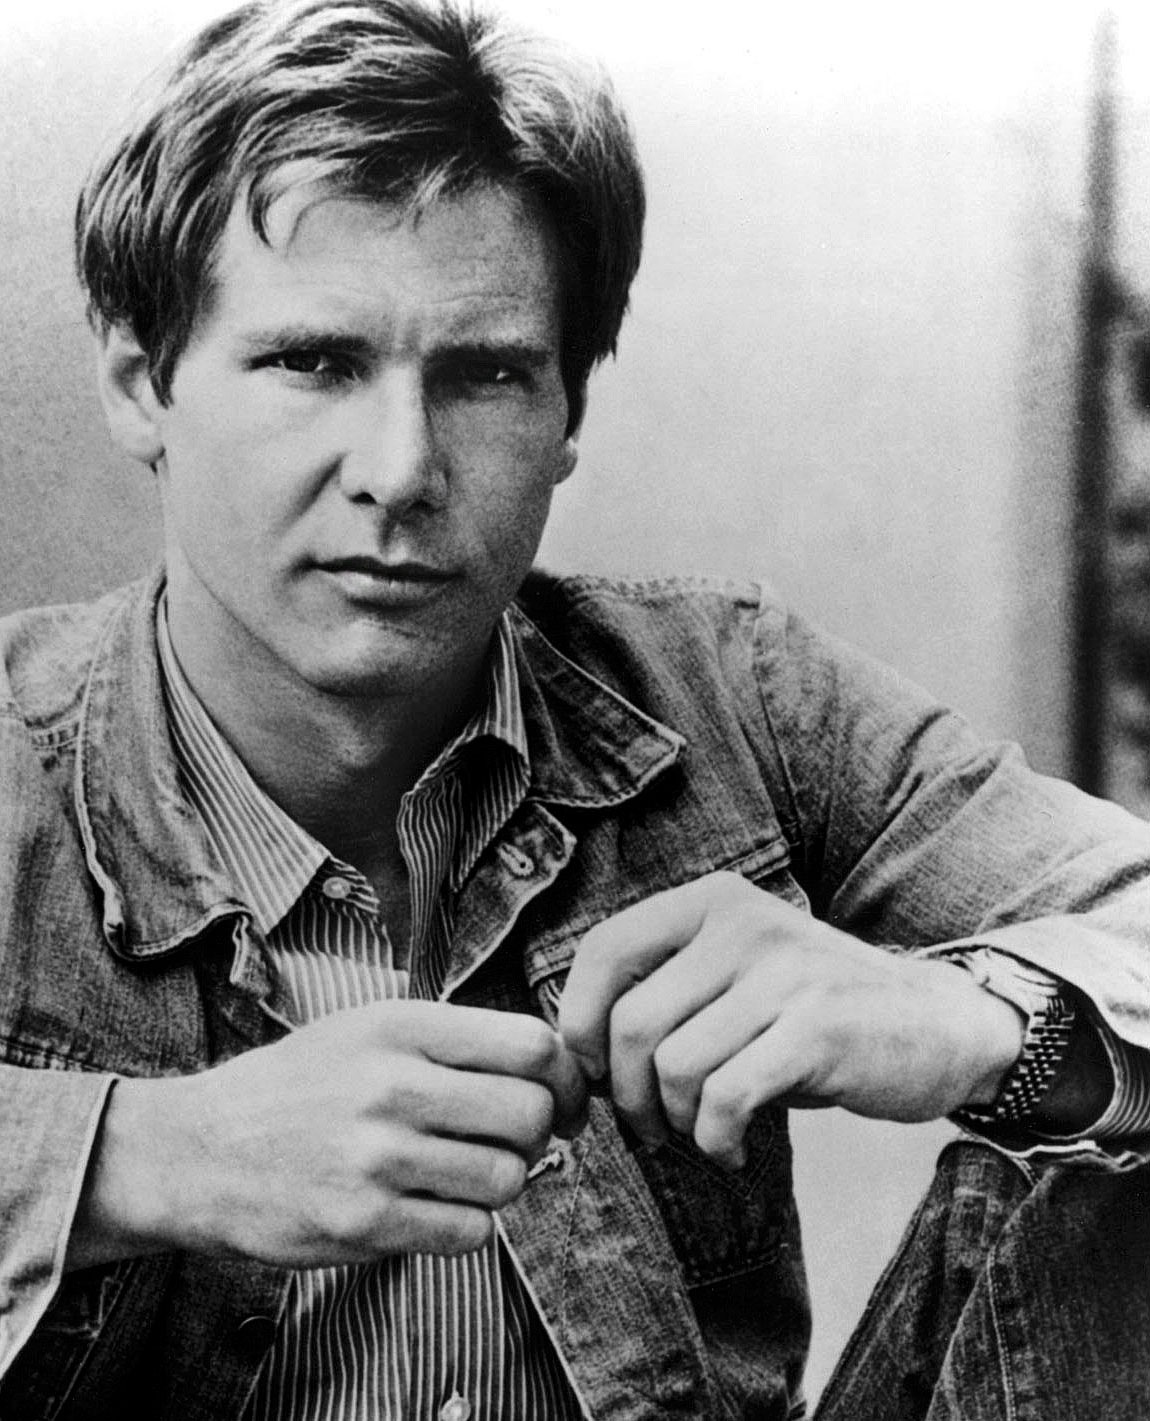 harrison ford images harrison ford hd wallpaper and background